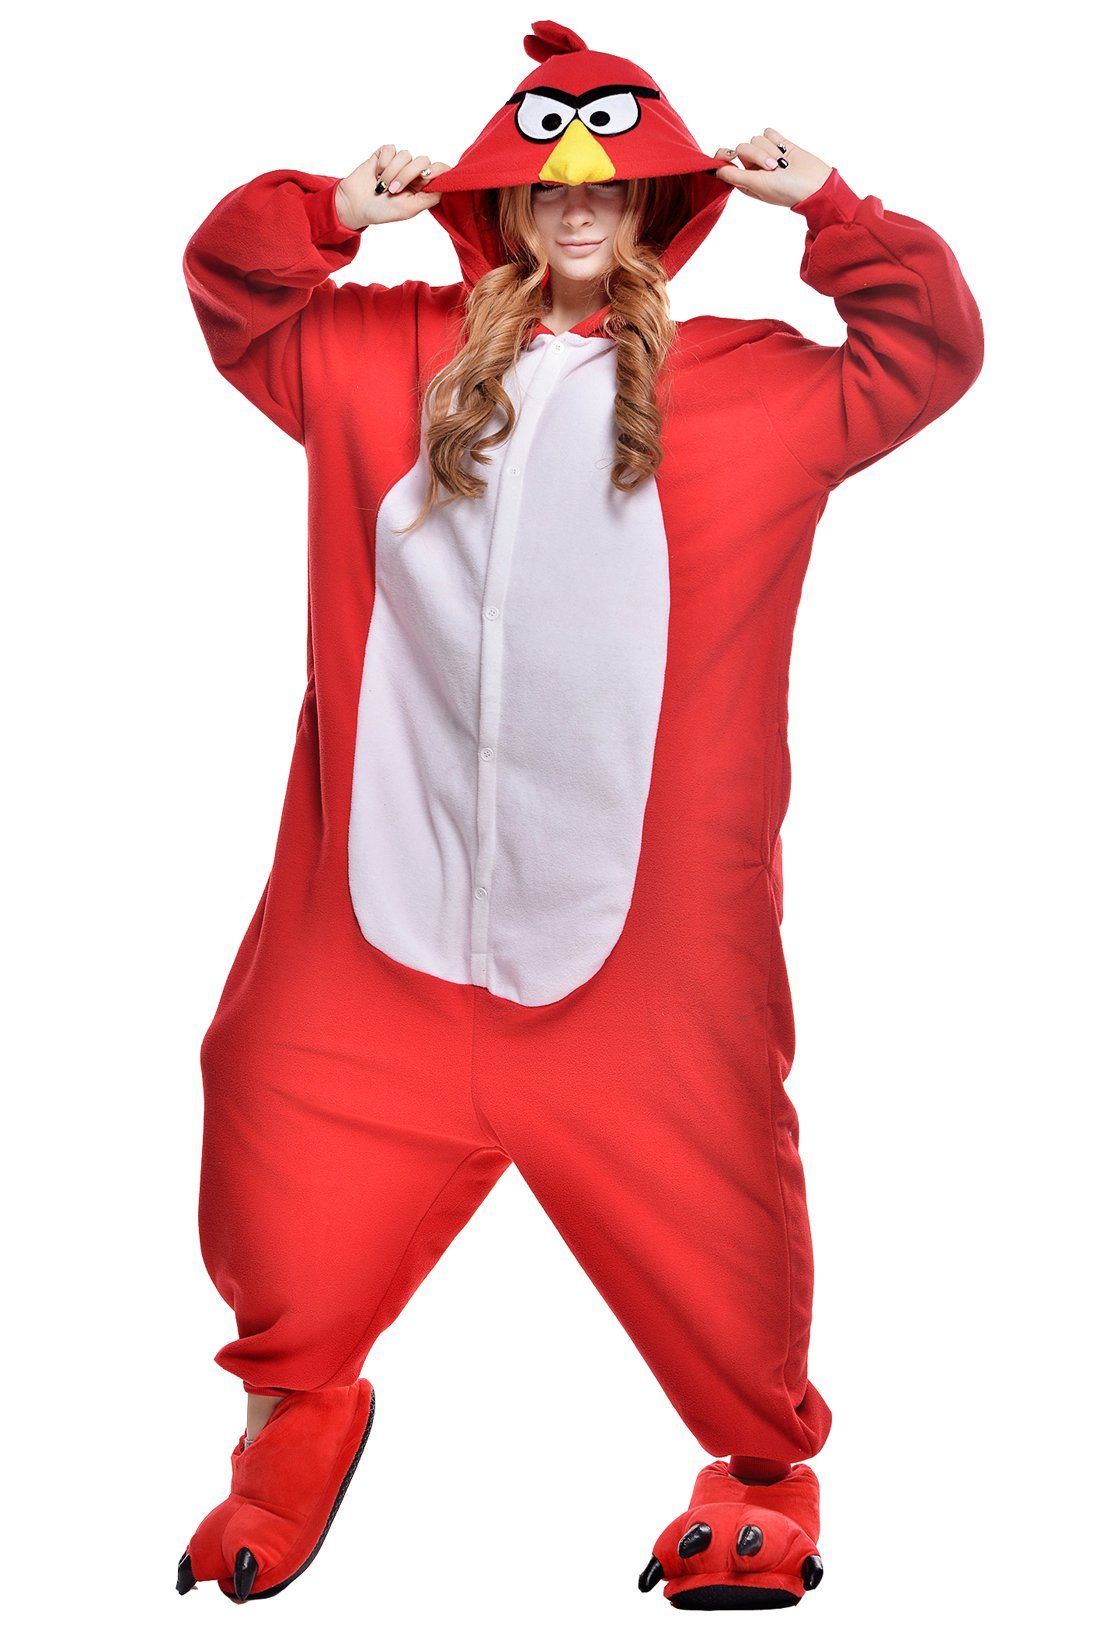 Adult Red Angry Bird Onesie Pajamas Kigurumi Halloween Cosplay Costume